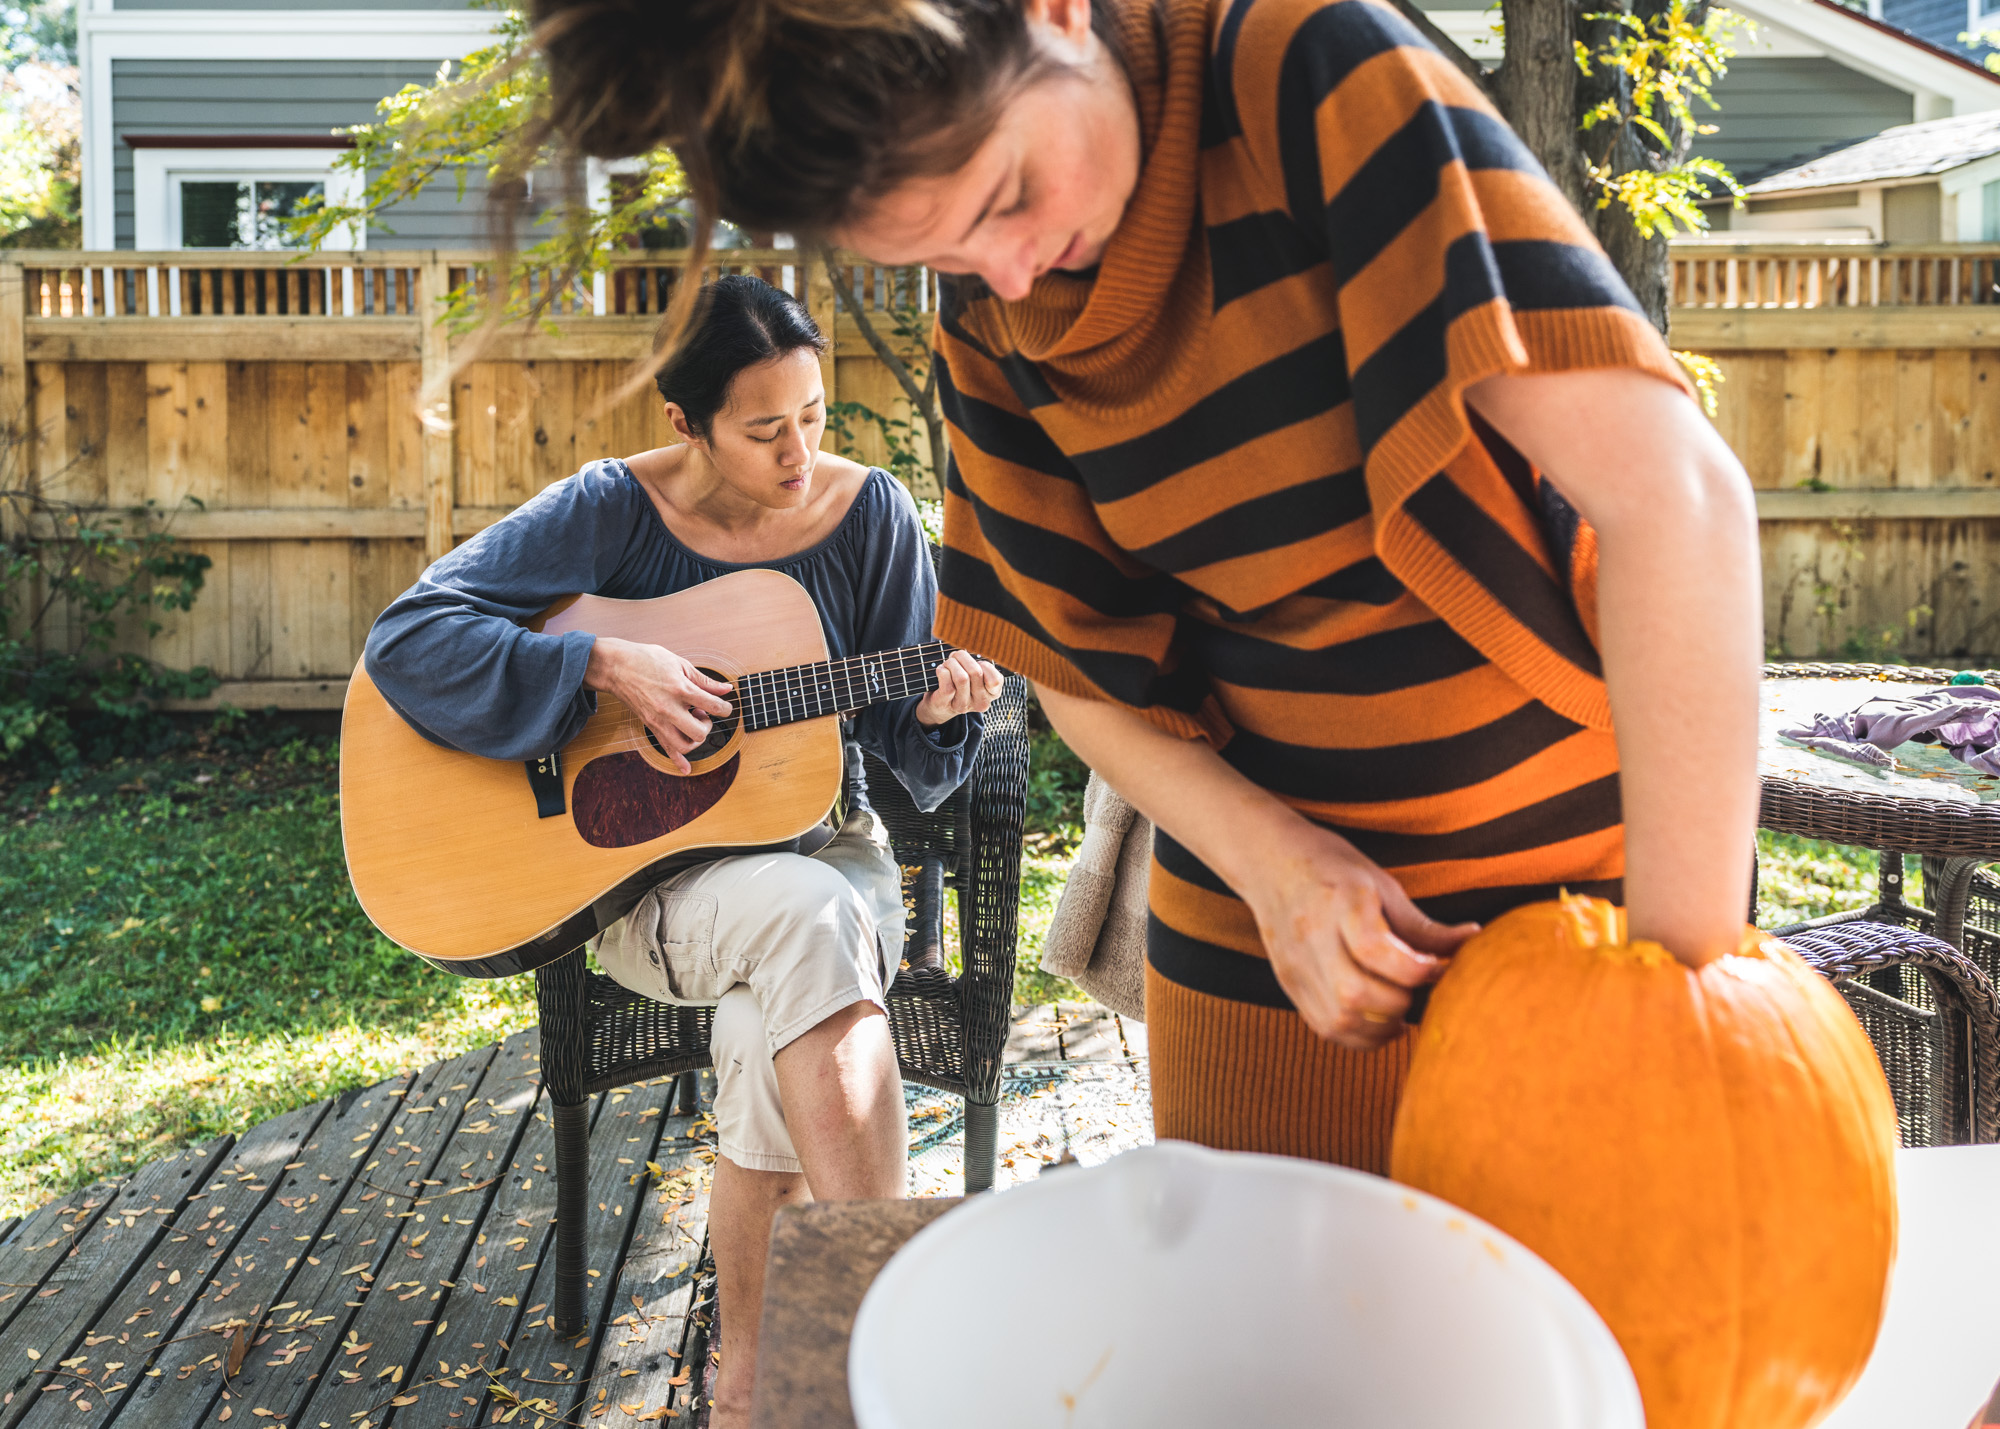 Young woman carves a pumpkin as another woman plays guitar behind her